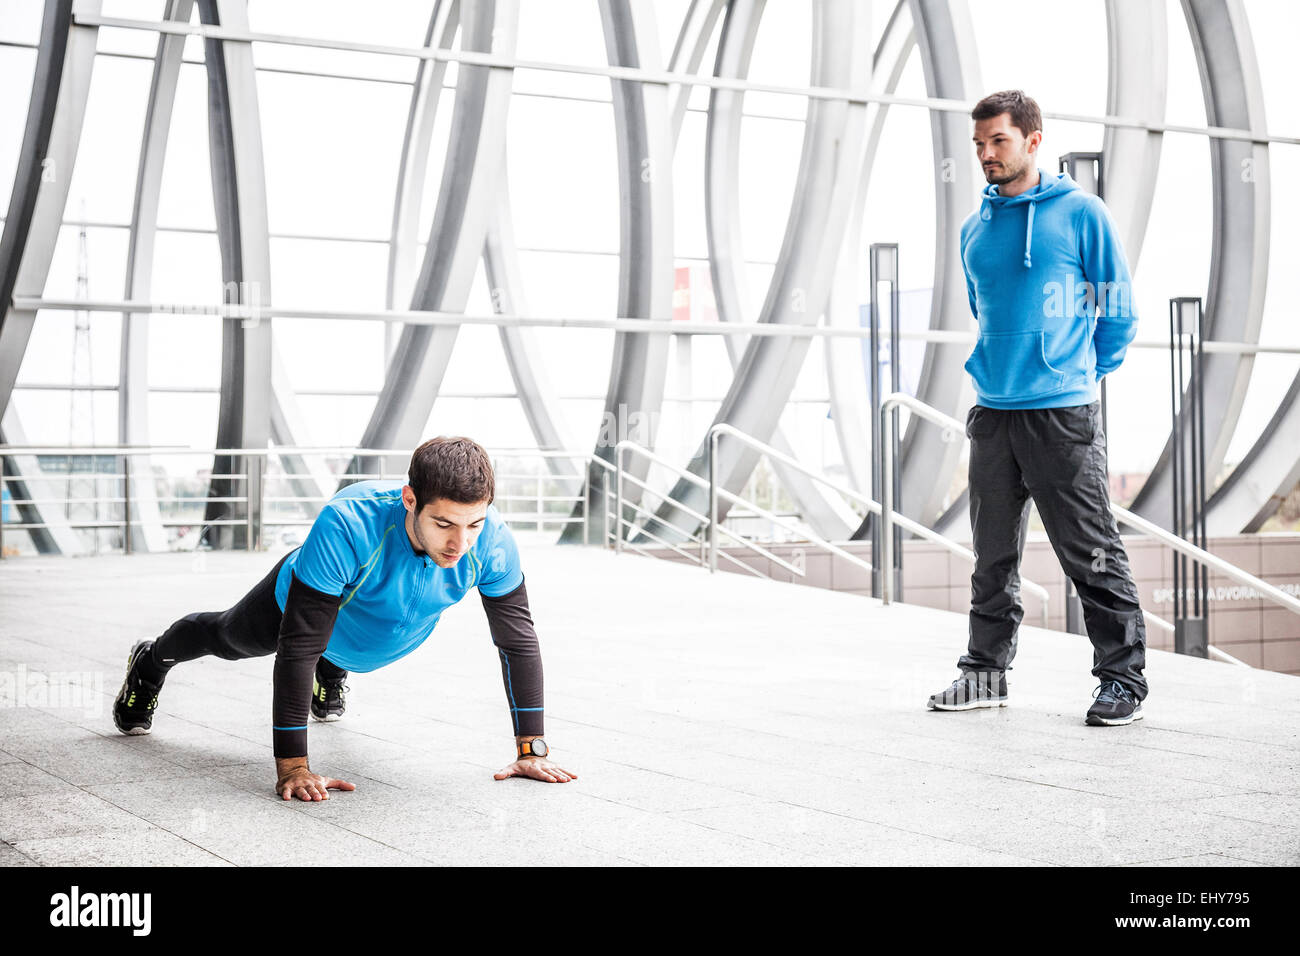 Two male runners doing push-ups in city - Stock Image